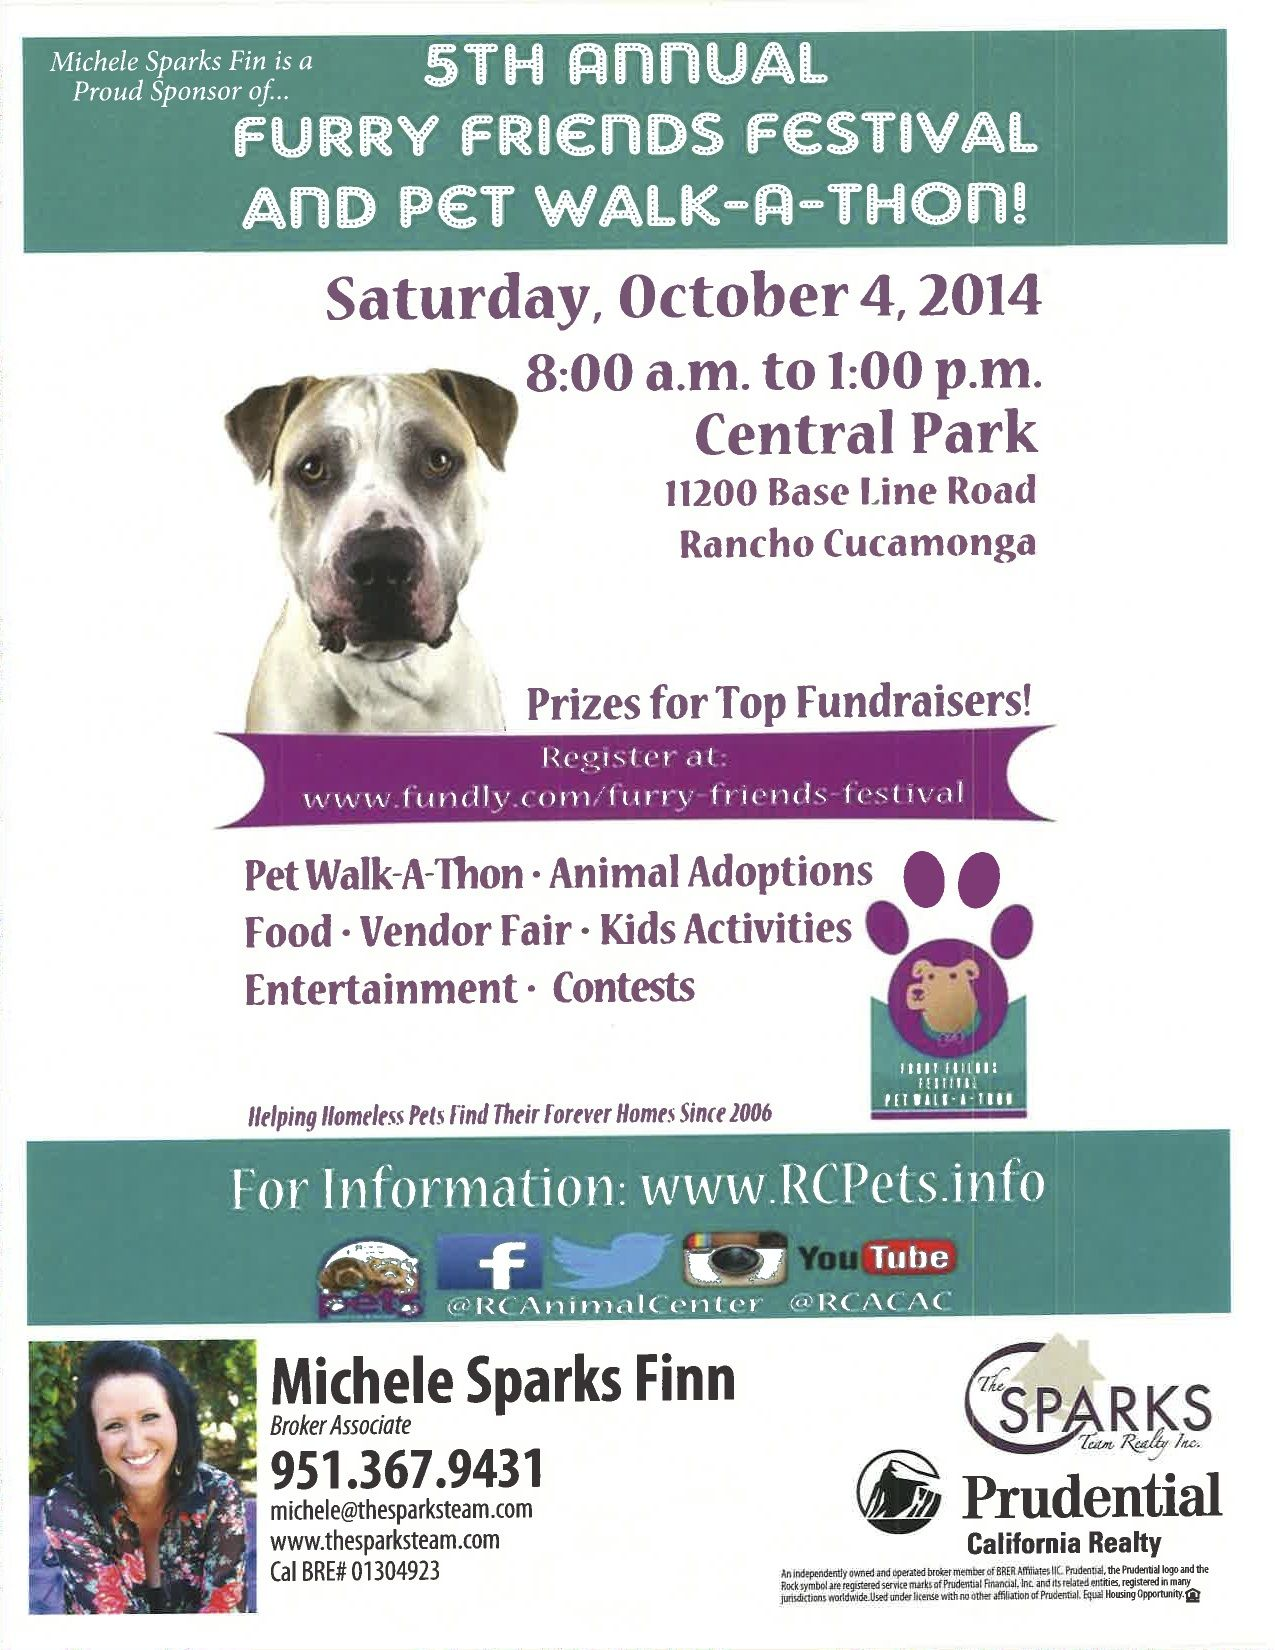 Join me on Saturday, October 4th from 8AM-1PM at Central Park in Rancho Cucamonga for the 5th Annual Furry Friends Festival.